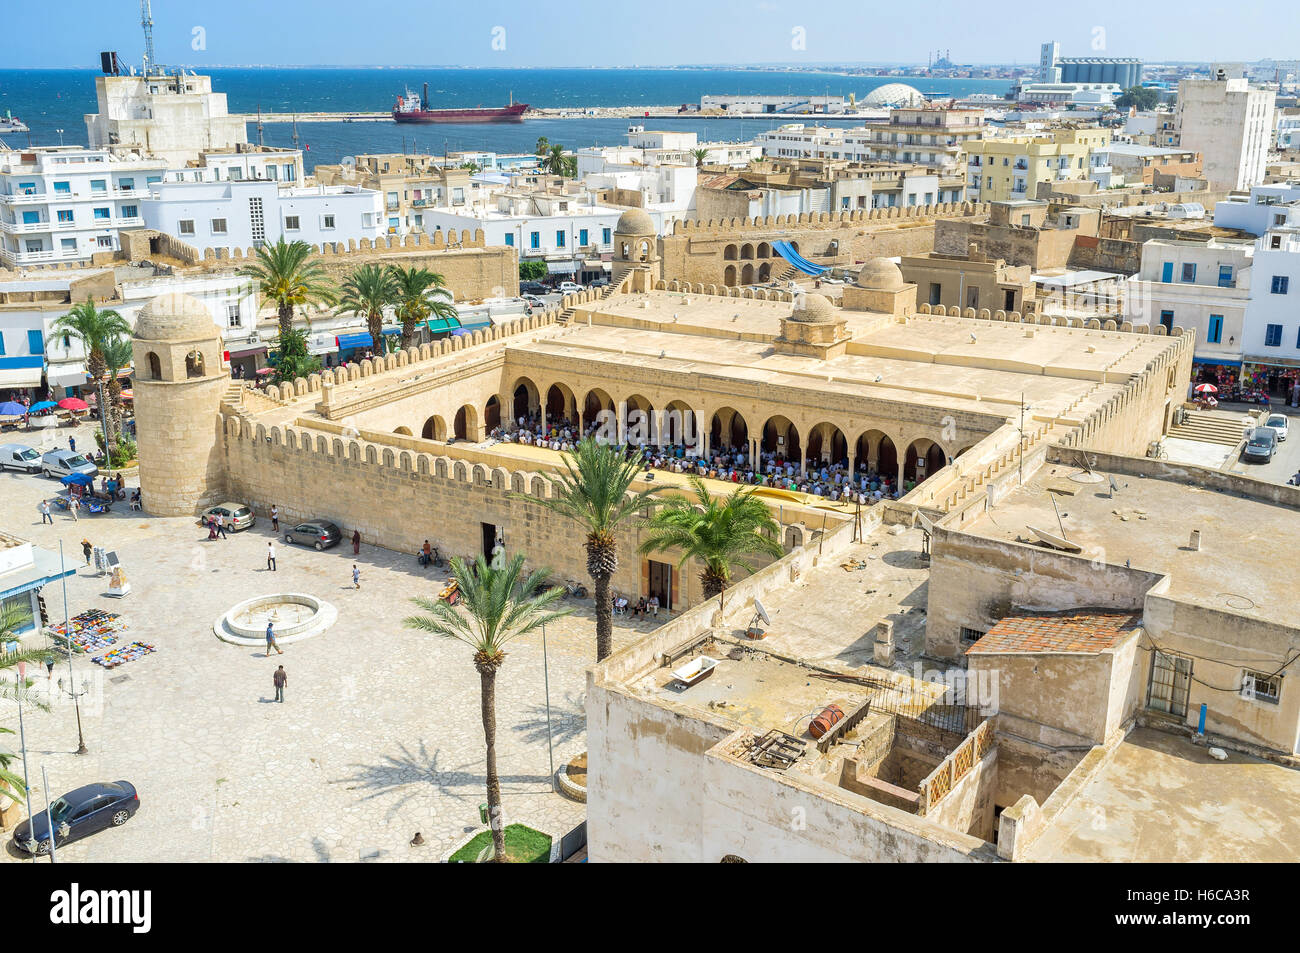 The aerial view of the Place des Martires with the numerous muslims in Grand Mosque during Mohammedan prayer, Sousse, Stock Photo